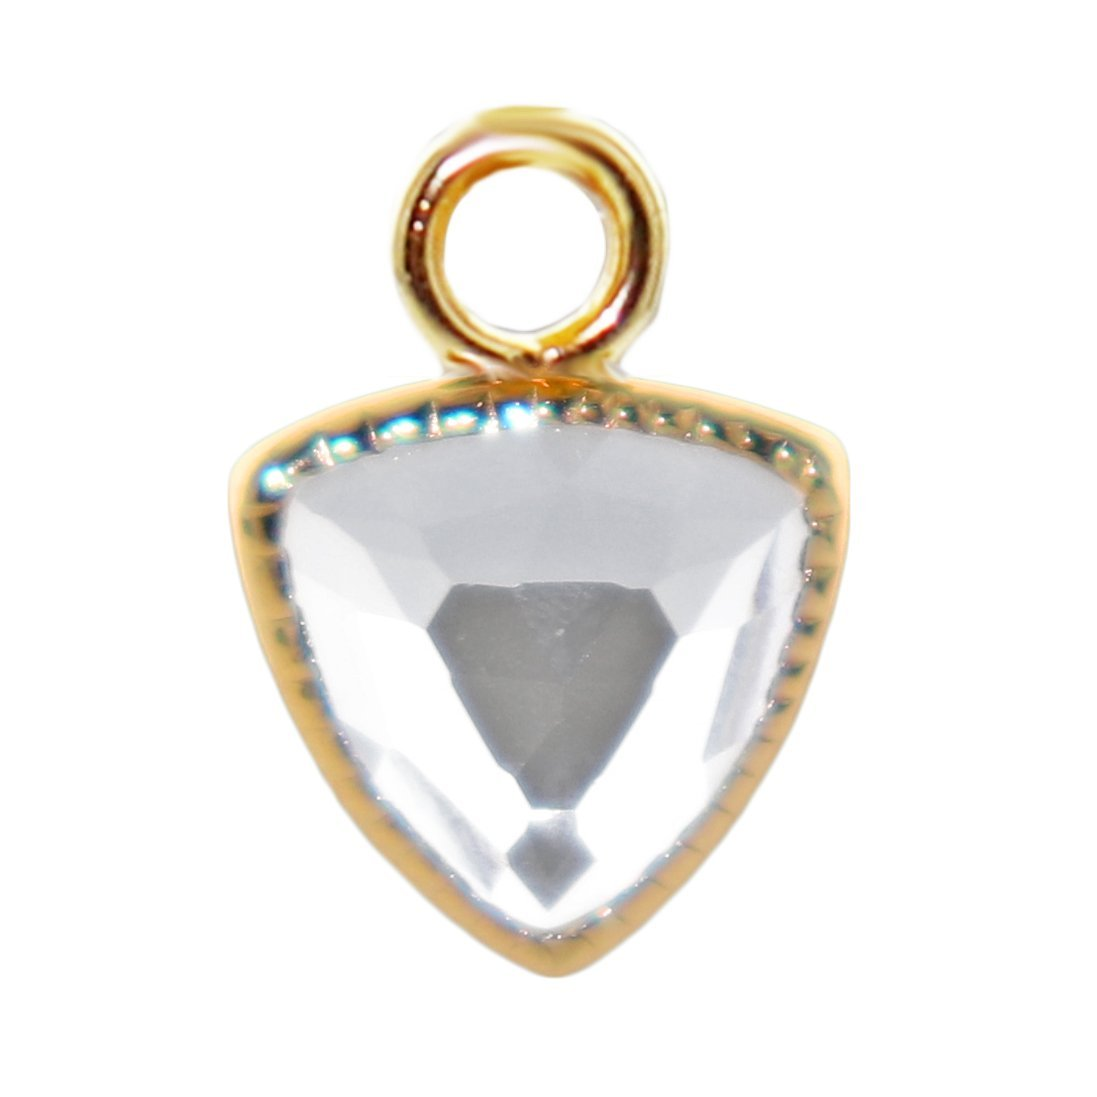 FREEDOM ICON - WHITE TOPAZ & GOLD - SO PRETTY CARA COTTER